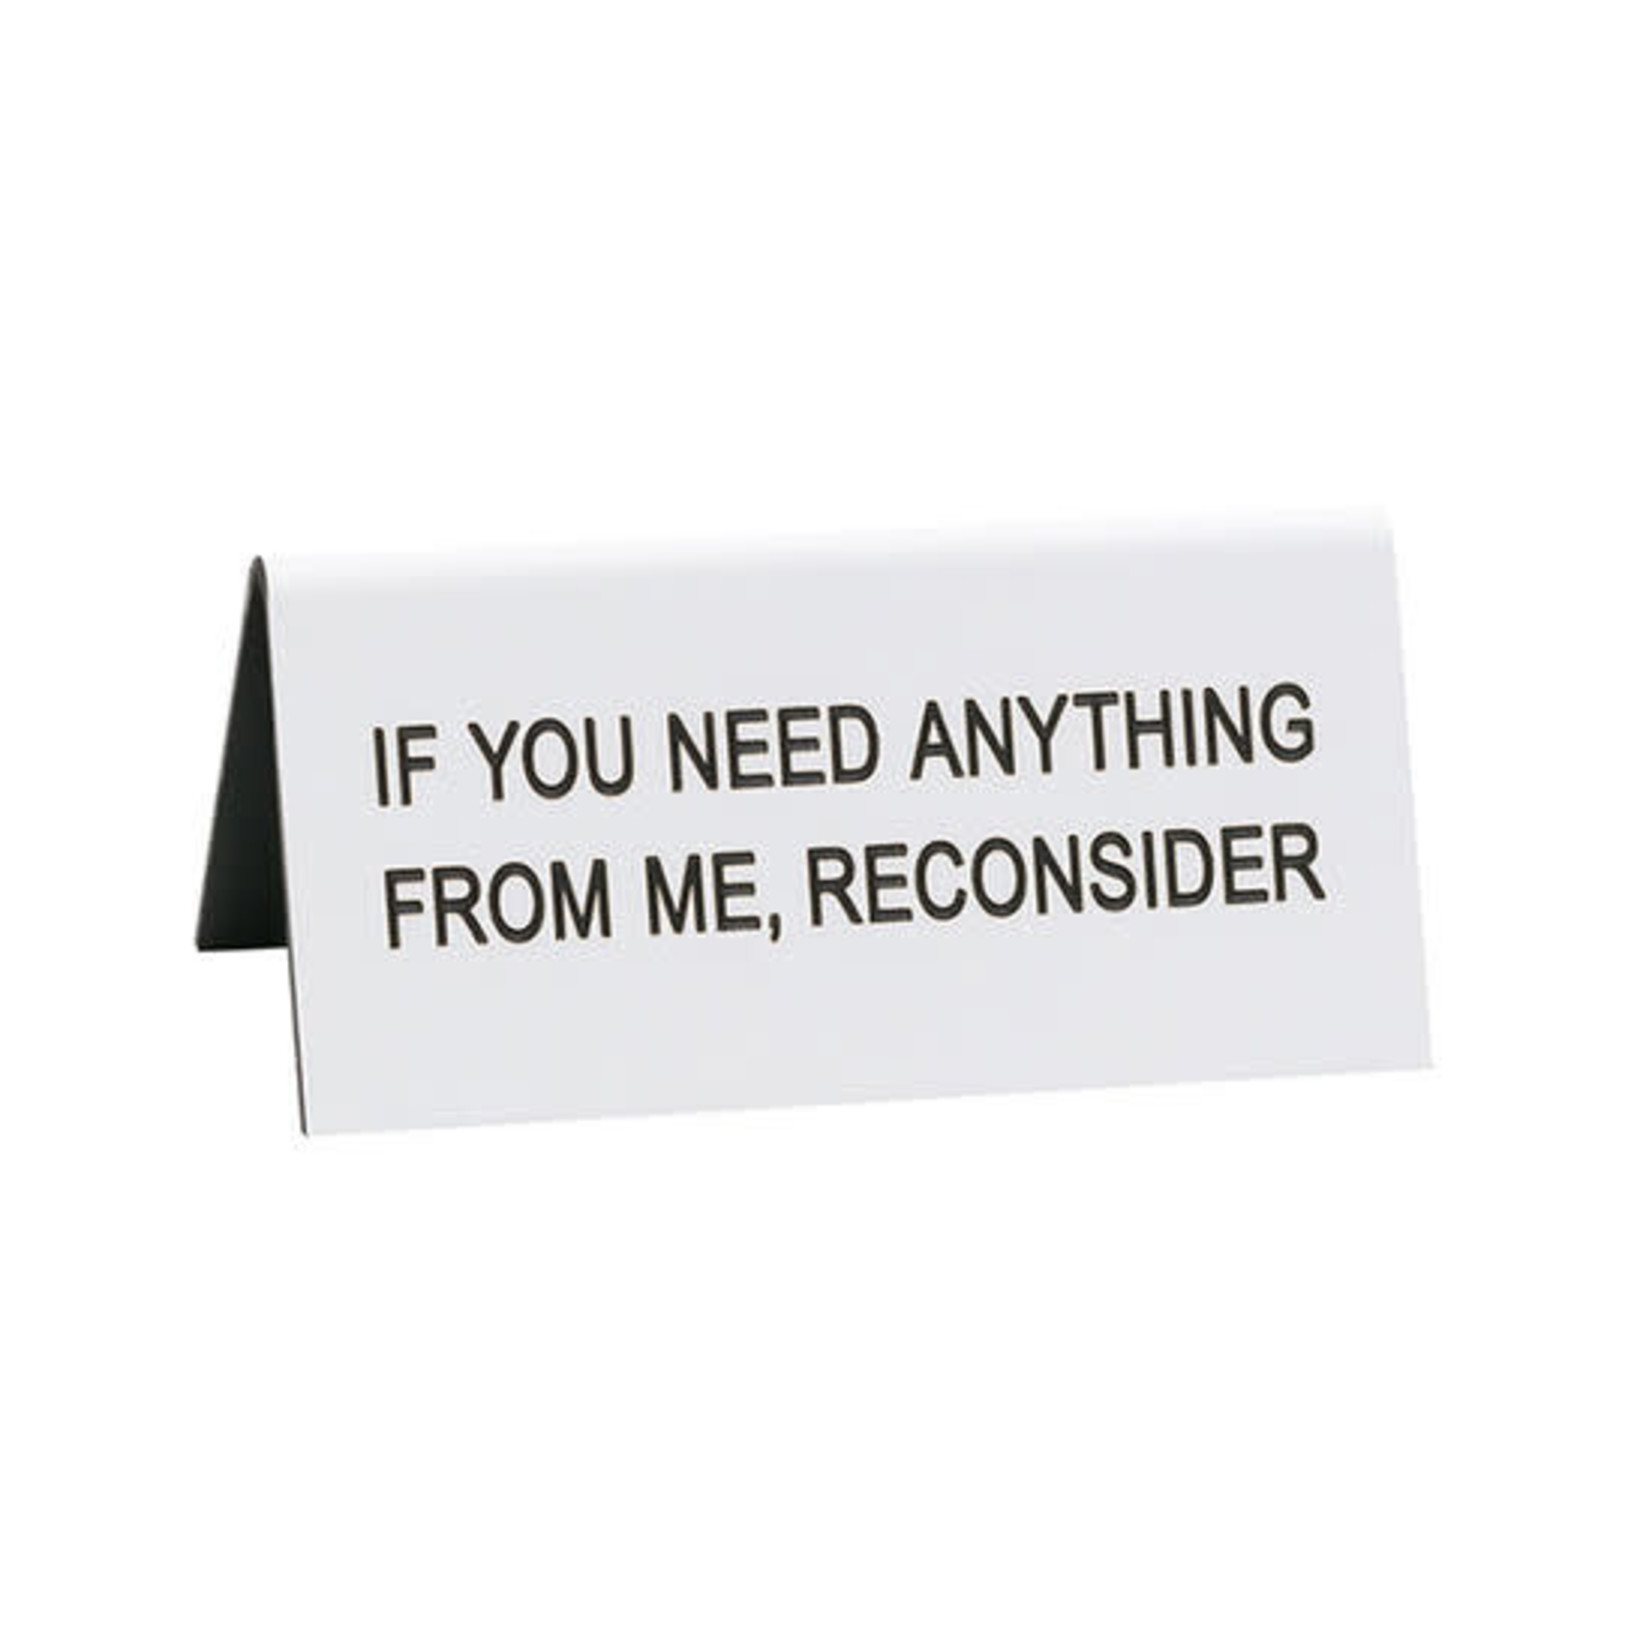 About Face Designs, Inc Snarky: Reconsider Desk Sign